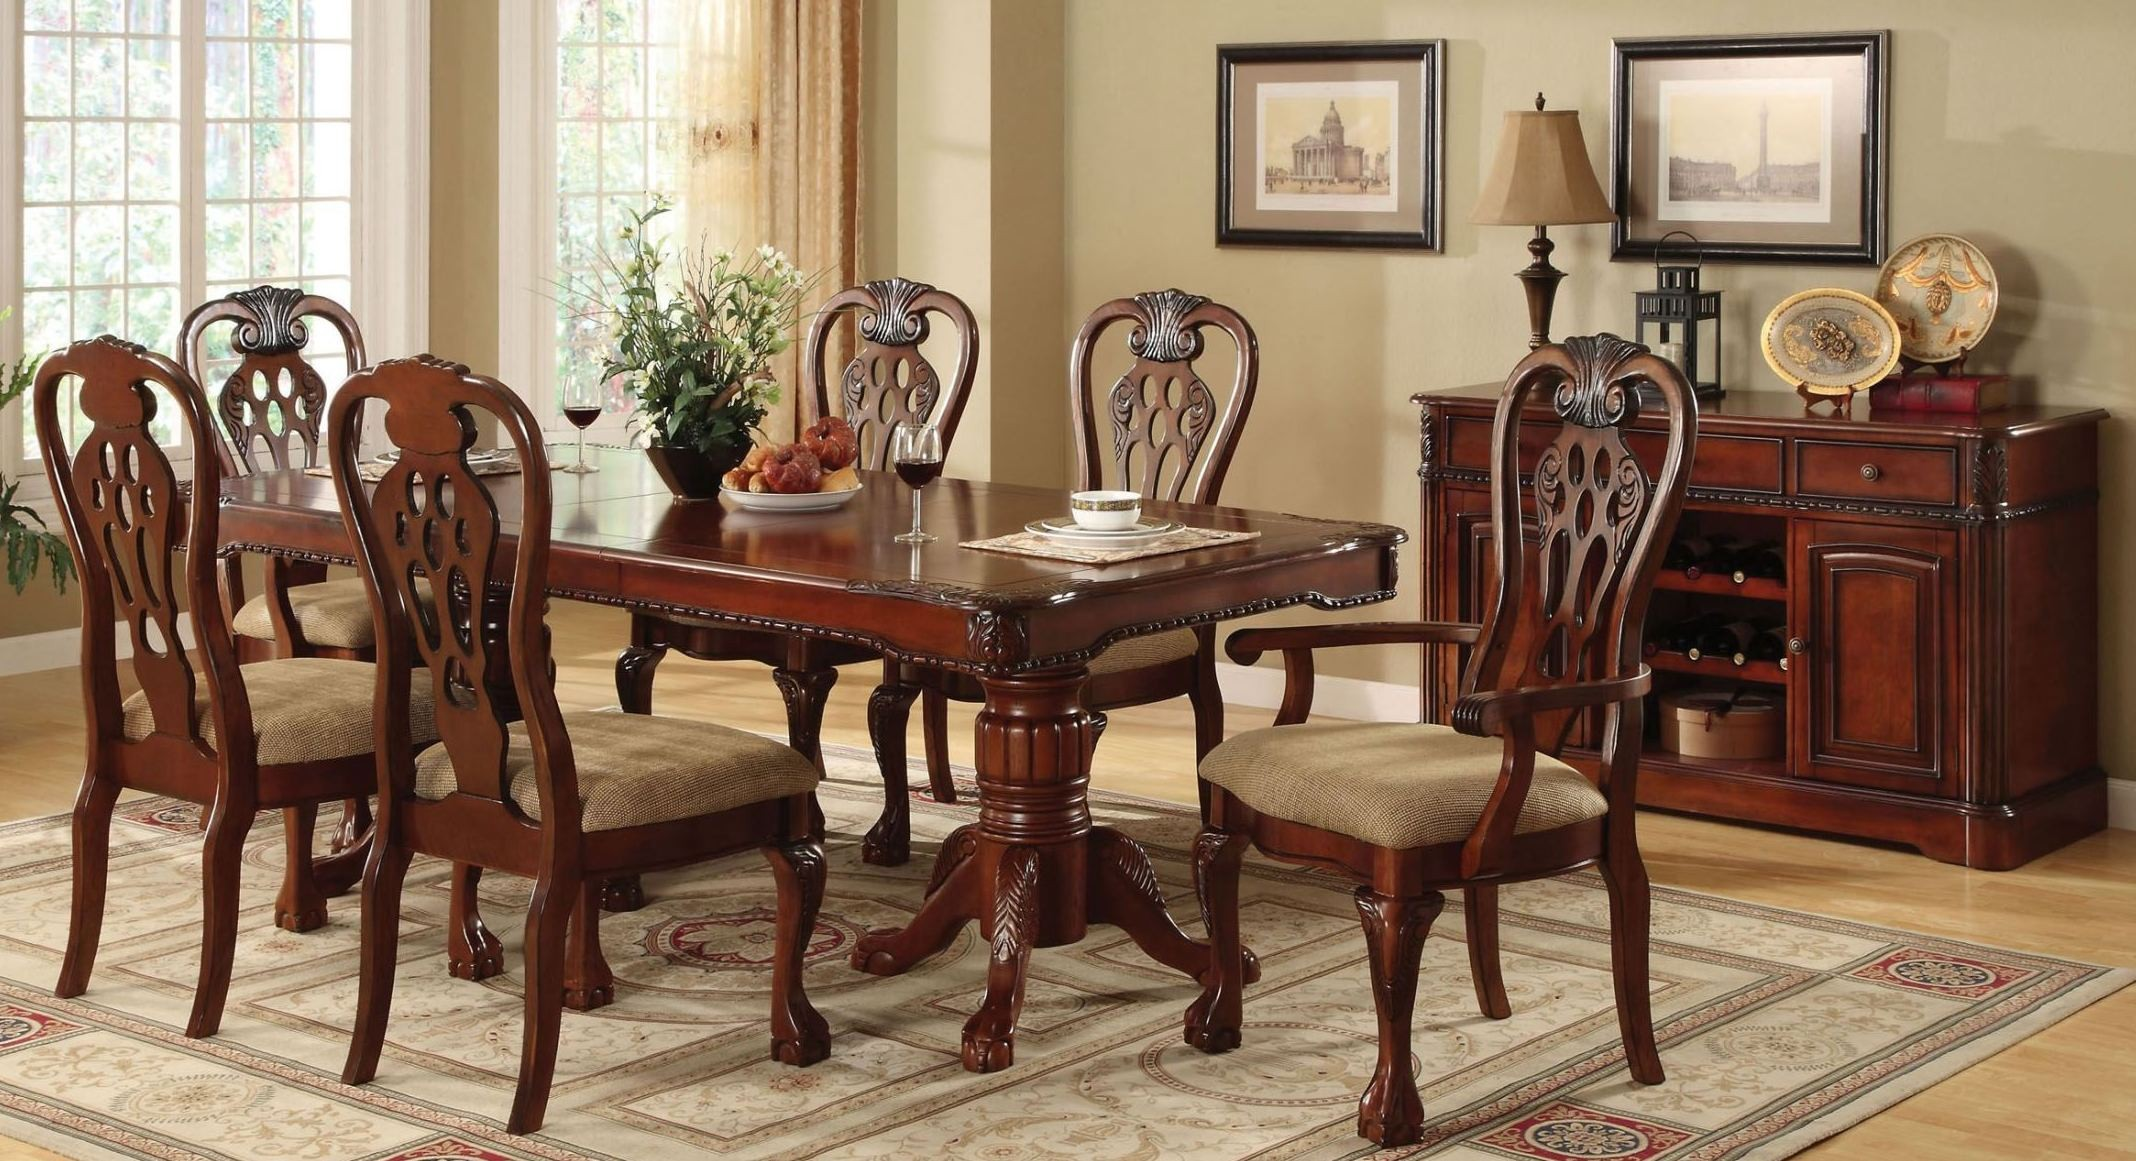 George Town Rectangular Double Pedestal Formal Dining Room